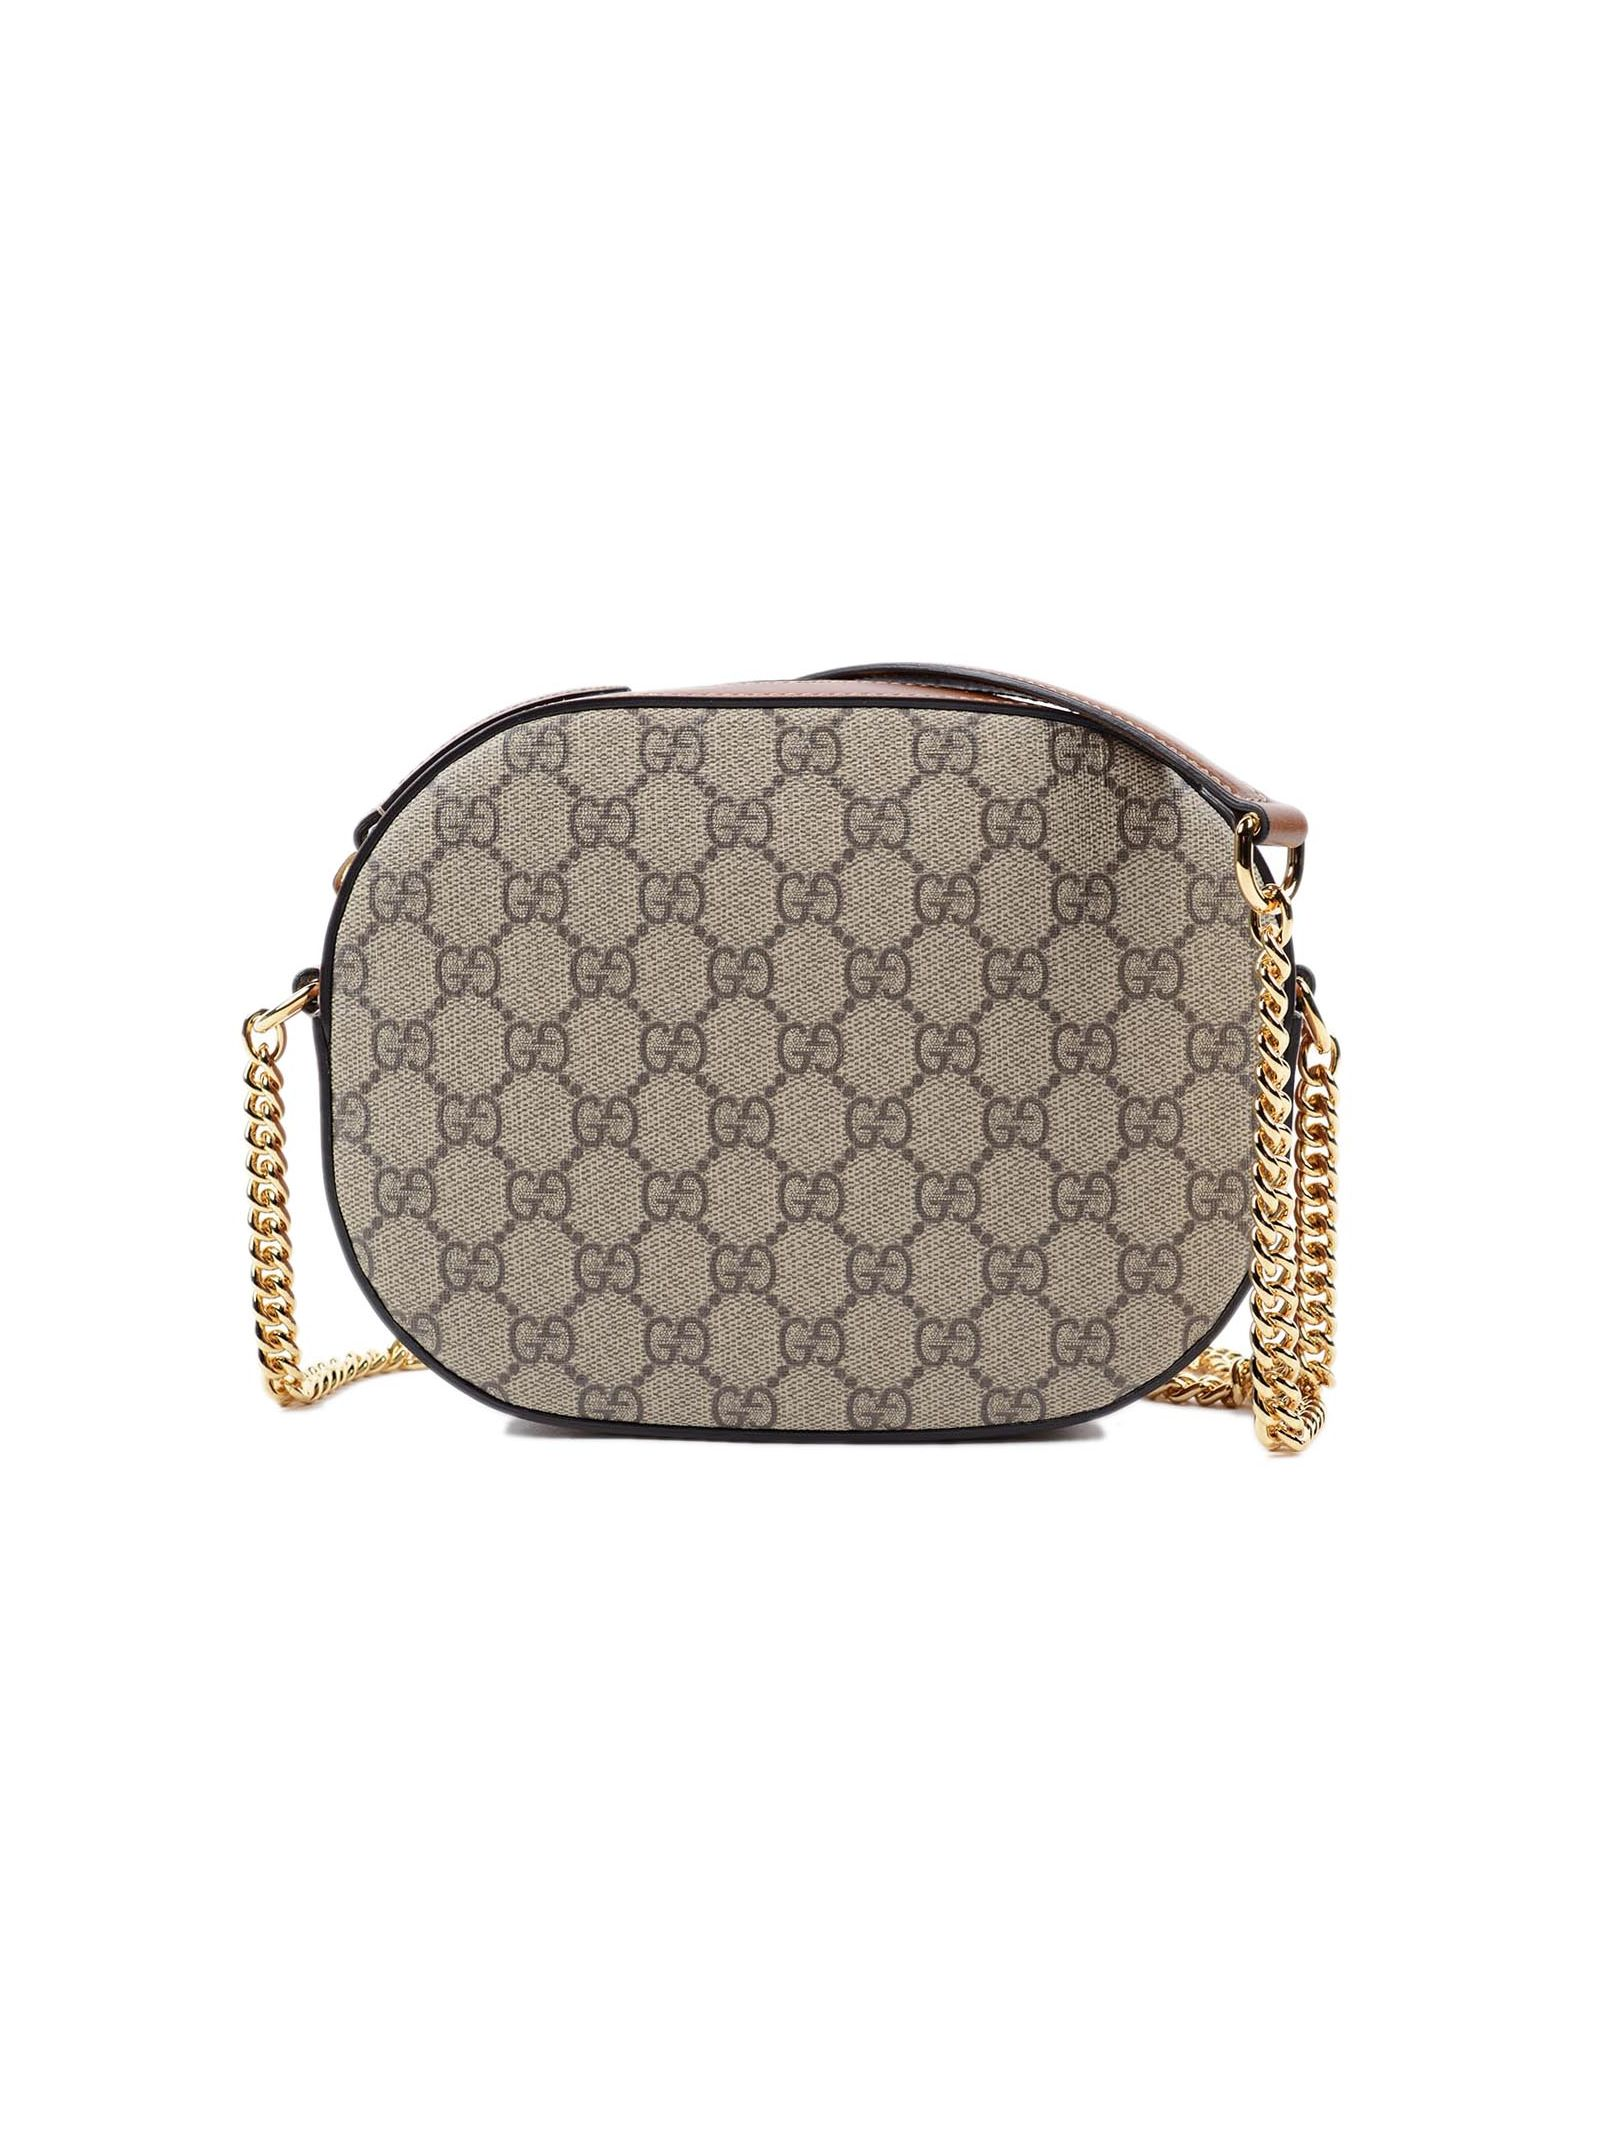 gucci female 124860 gucci gg supreme linea a bag